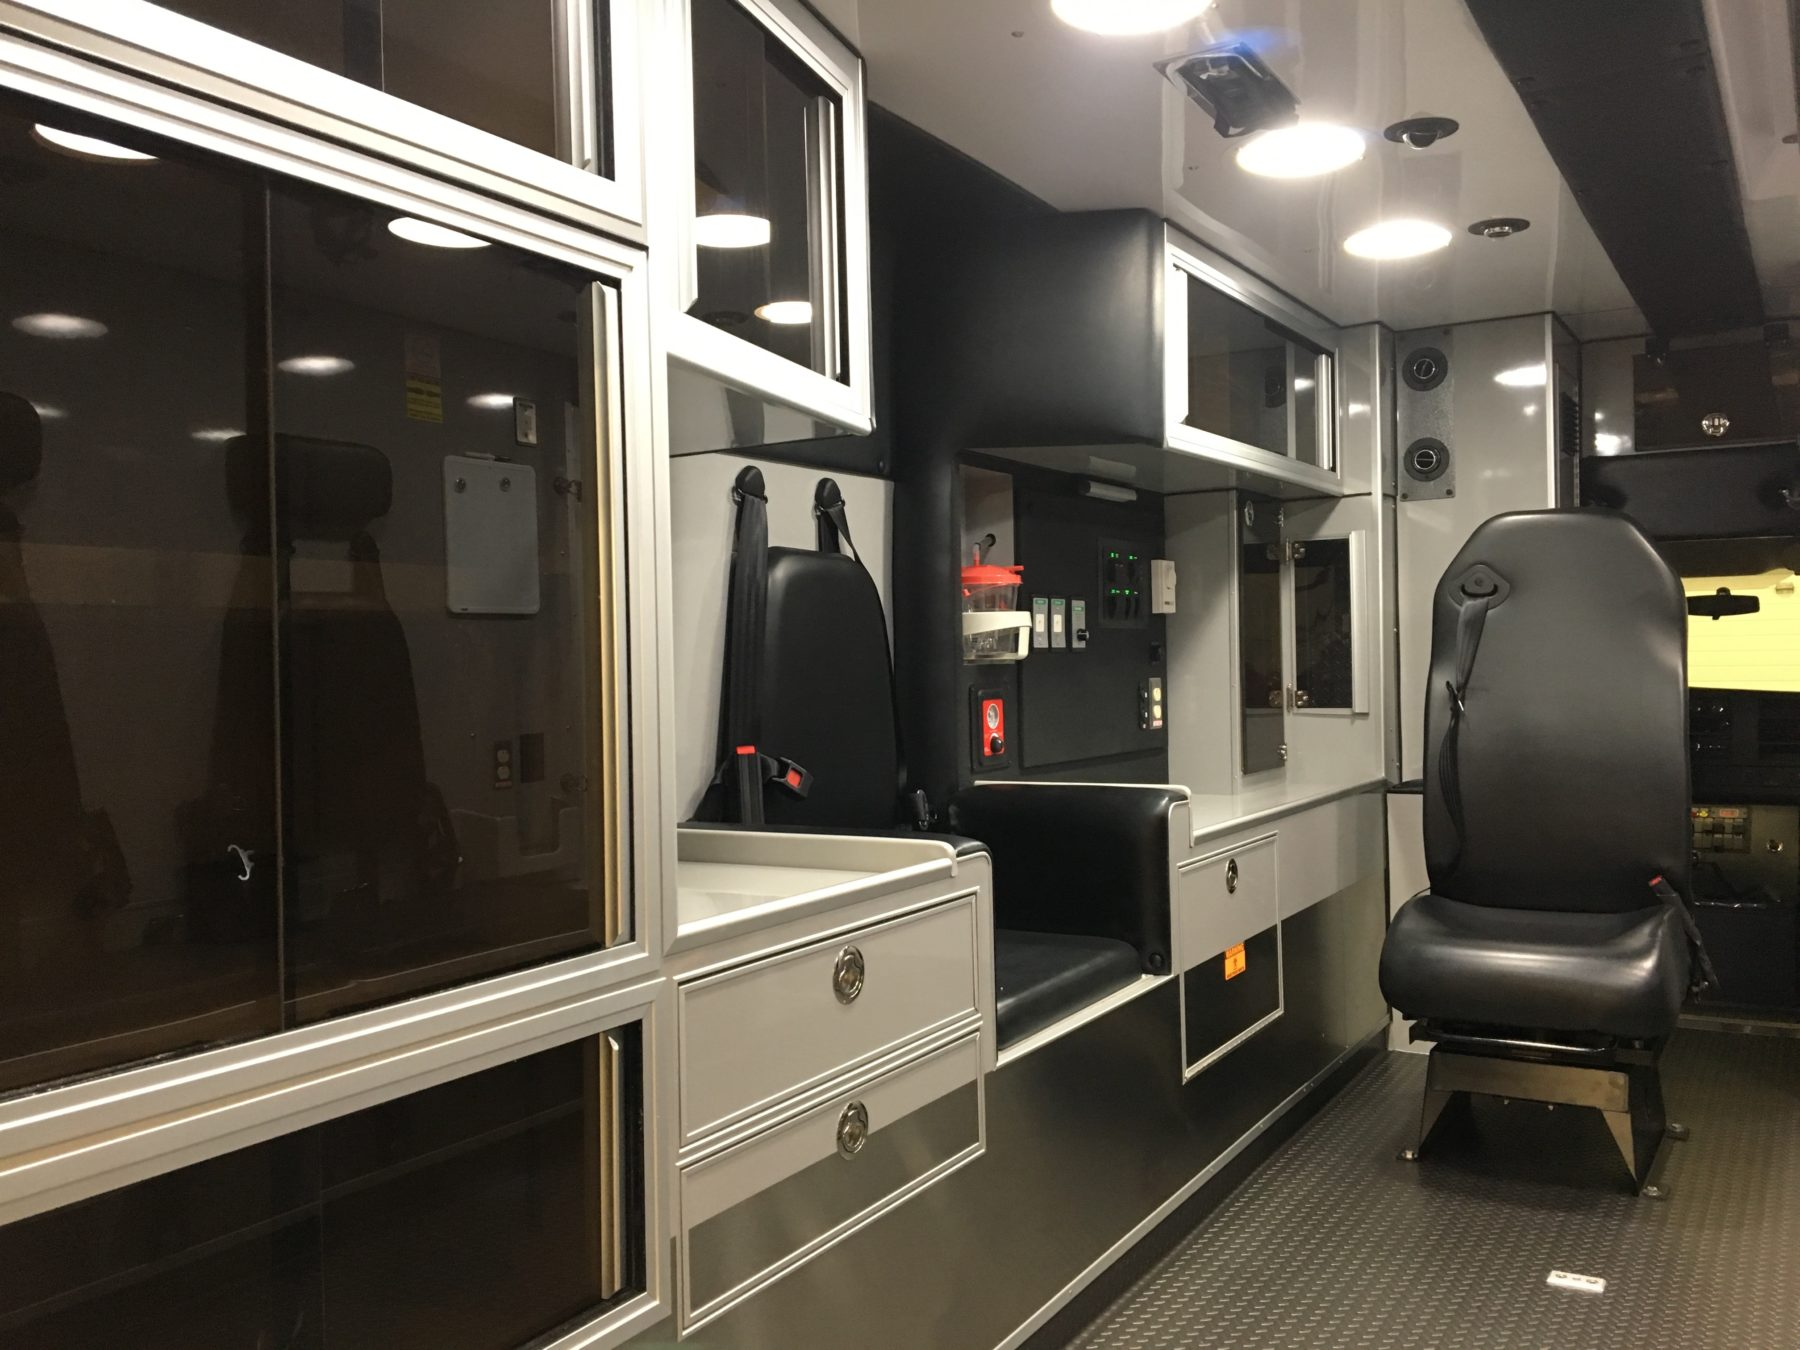 2016 Chevrolet G4500 Type 3 Ambulance For Sale – Picture 6